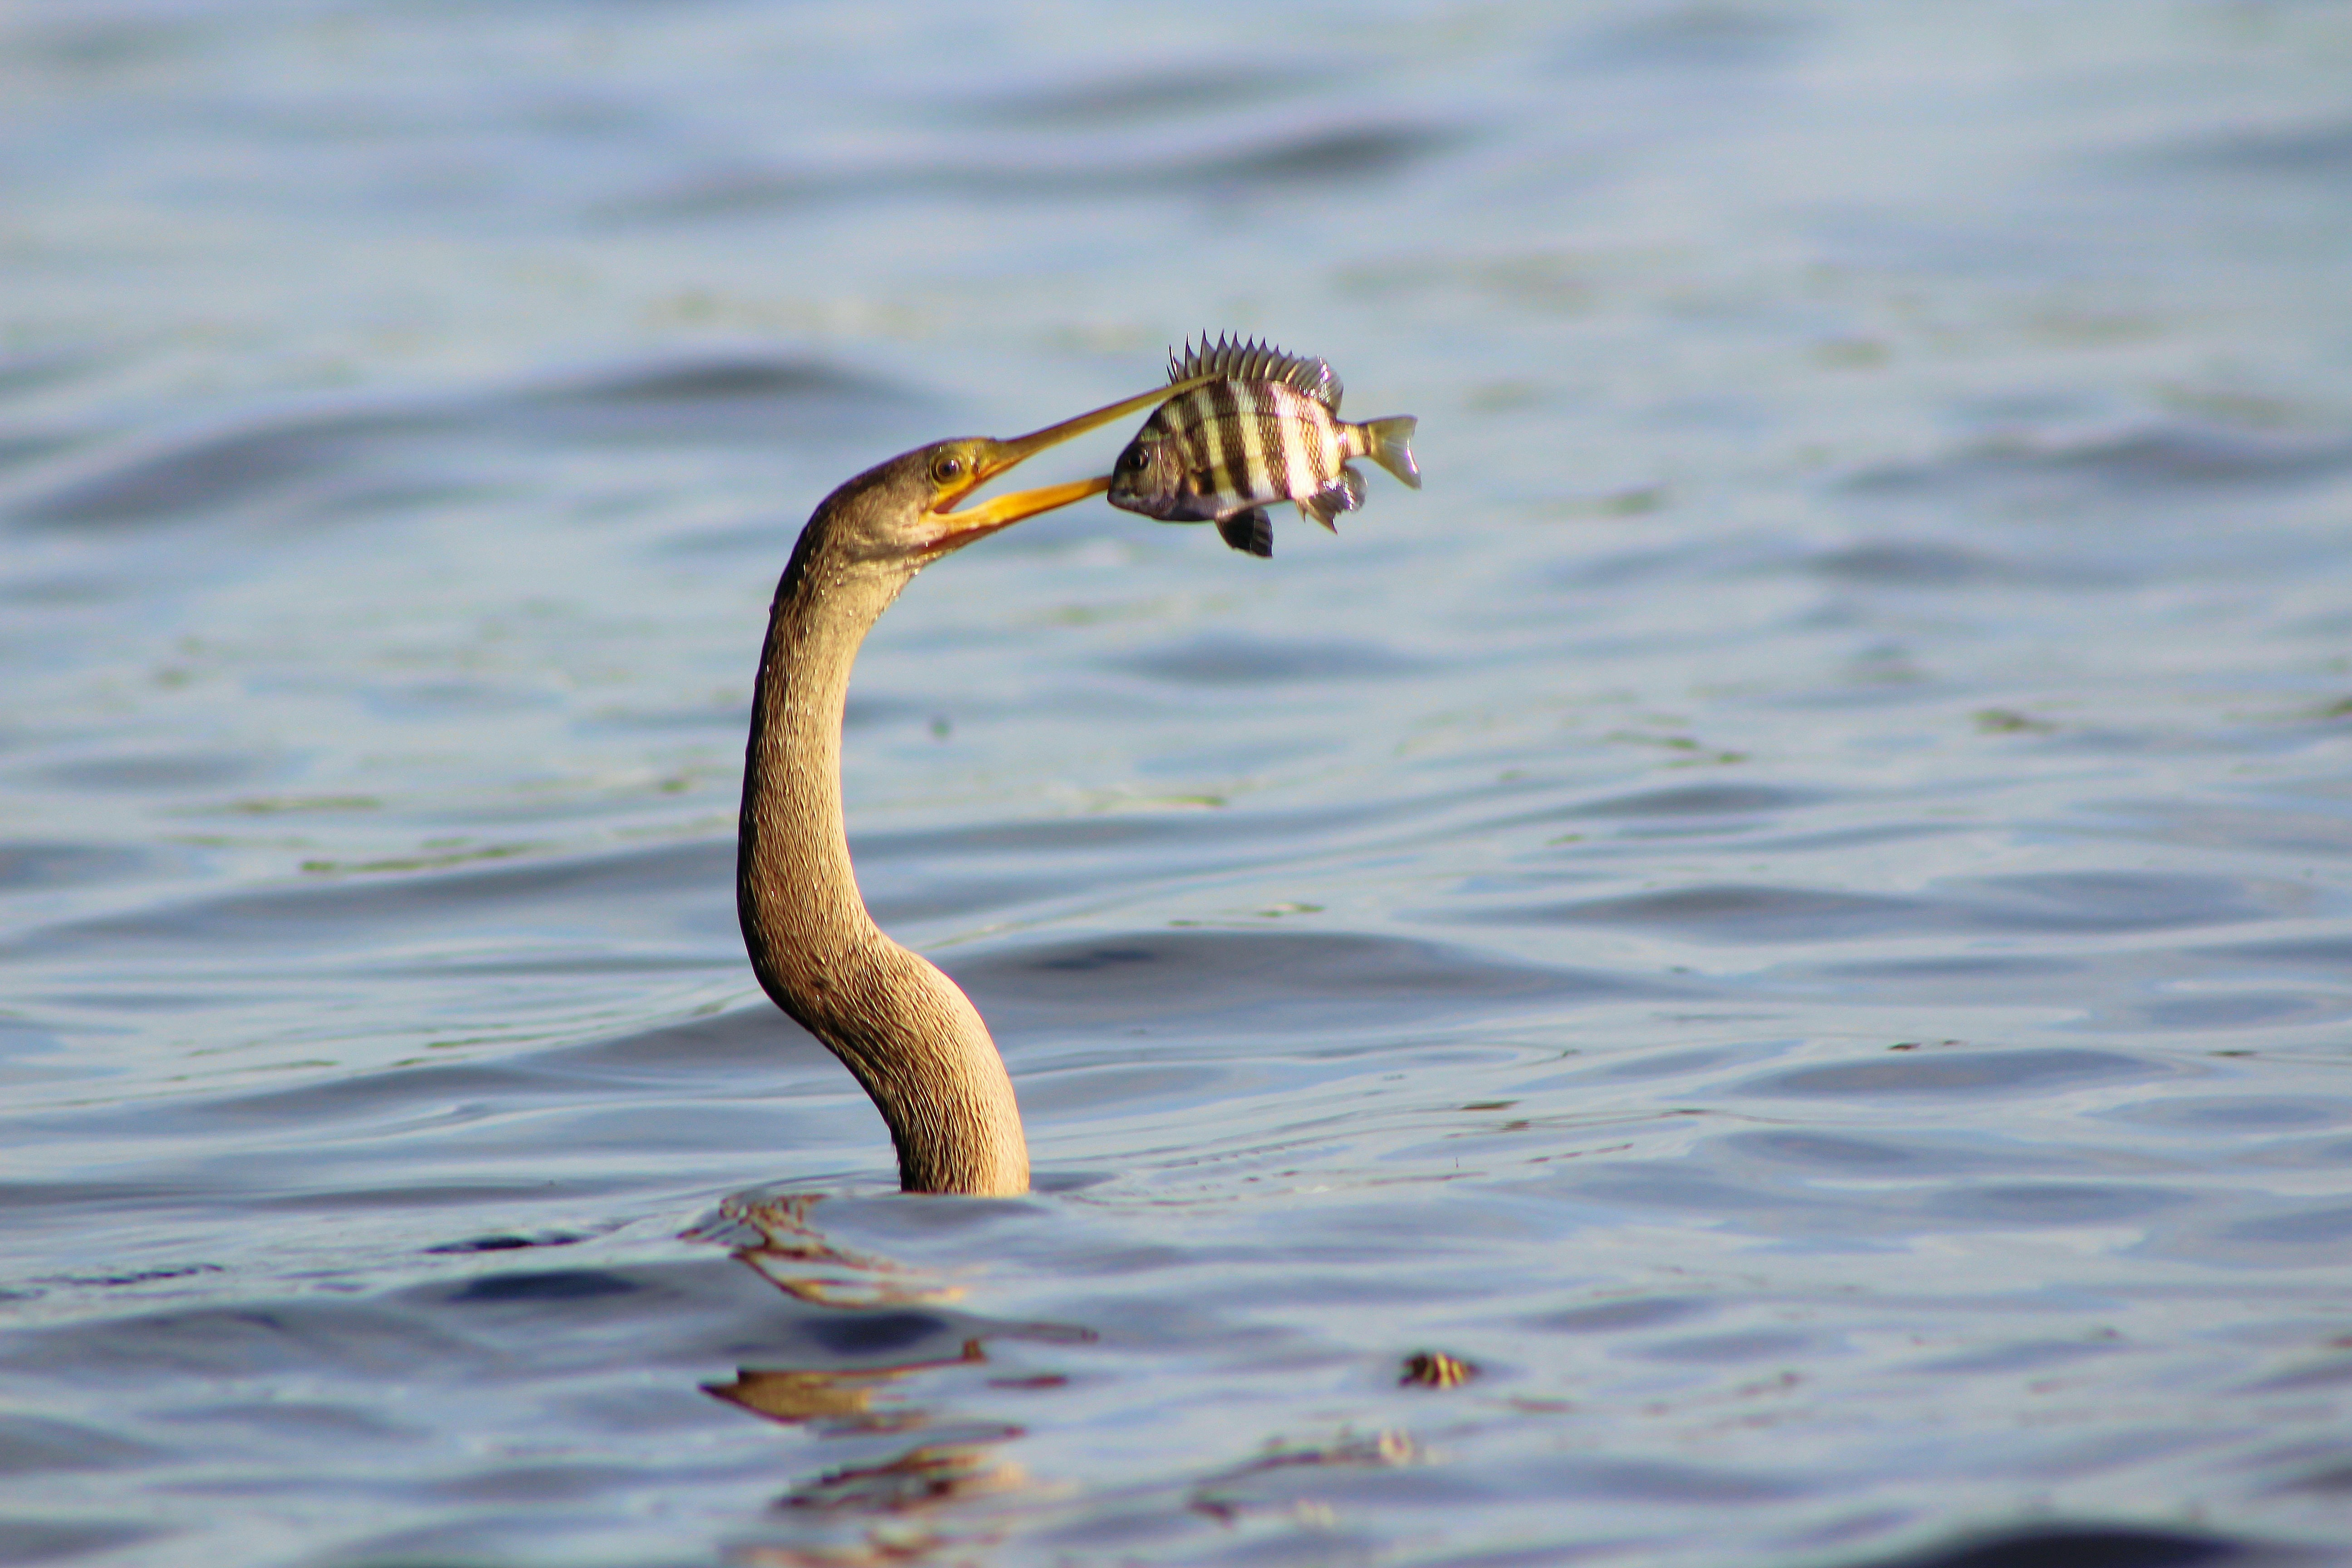 A long fish with a long beak catching another fish mid air just over the surface of the water